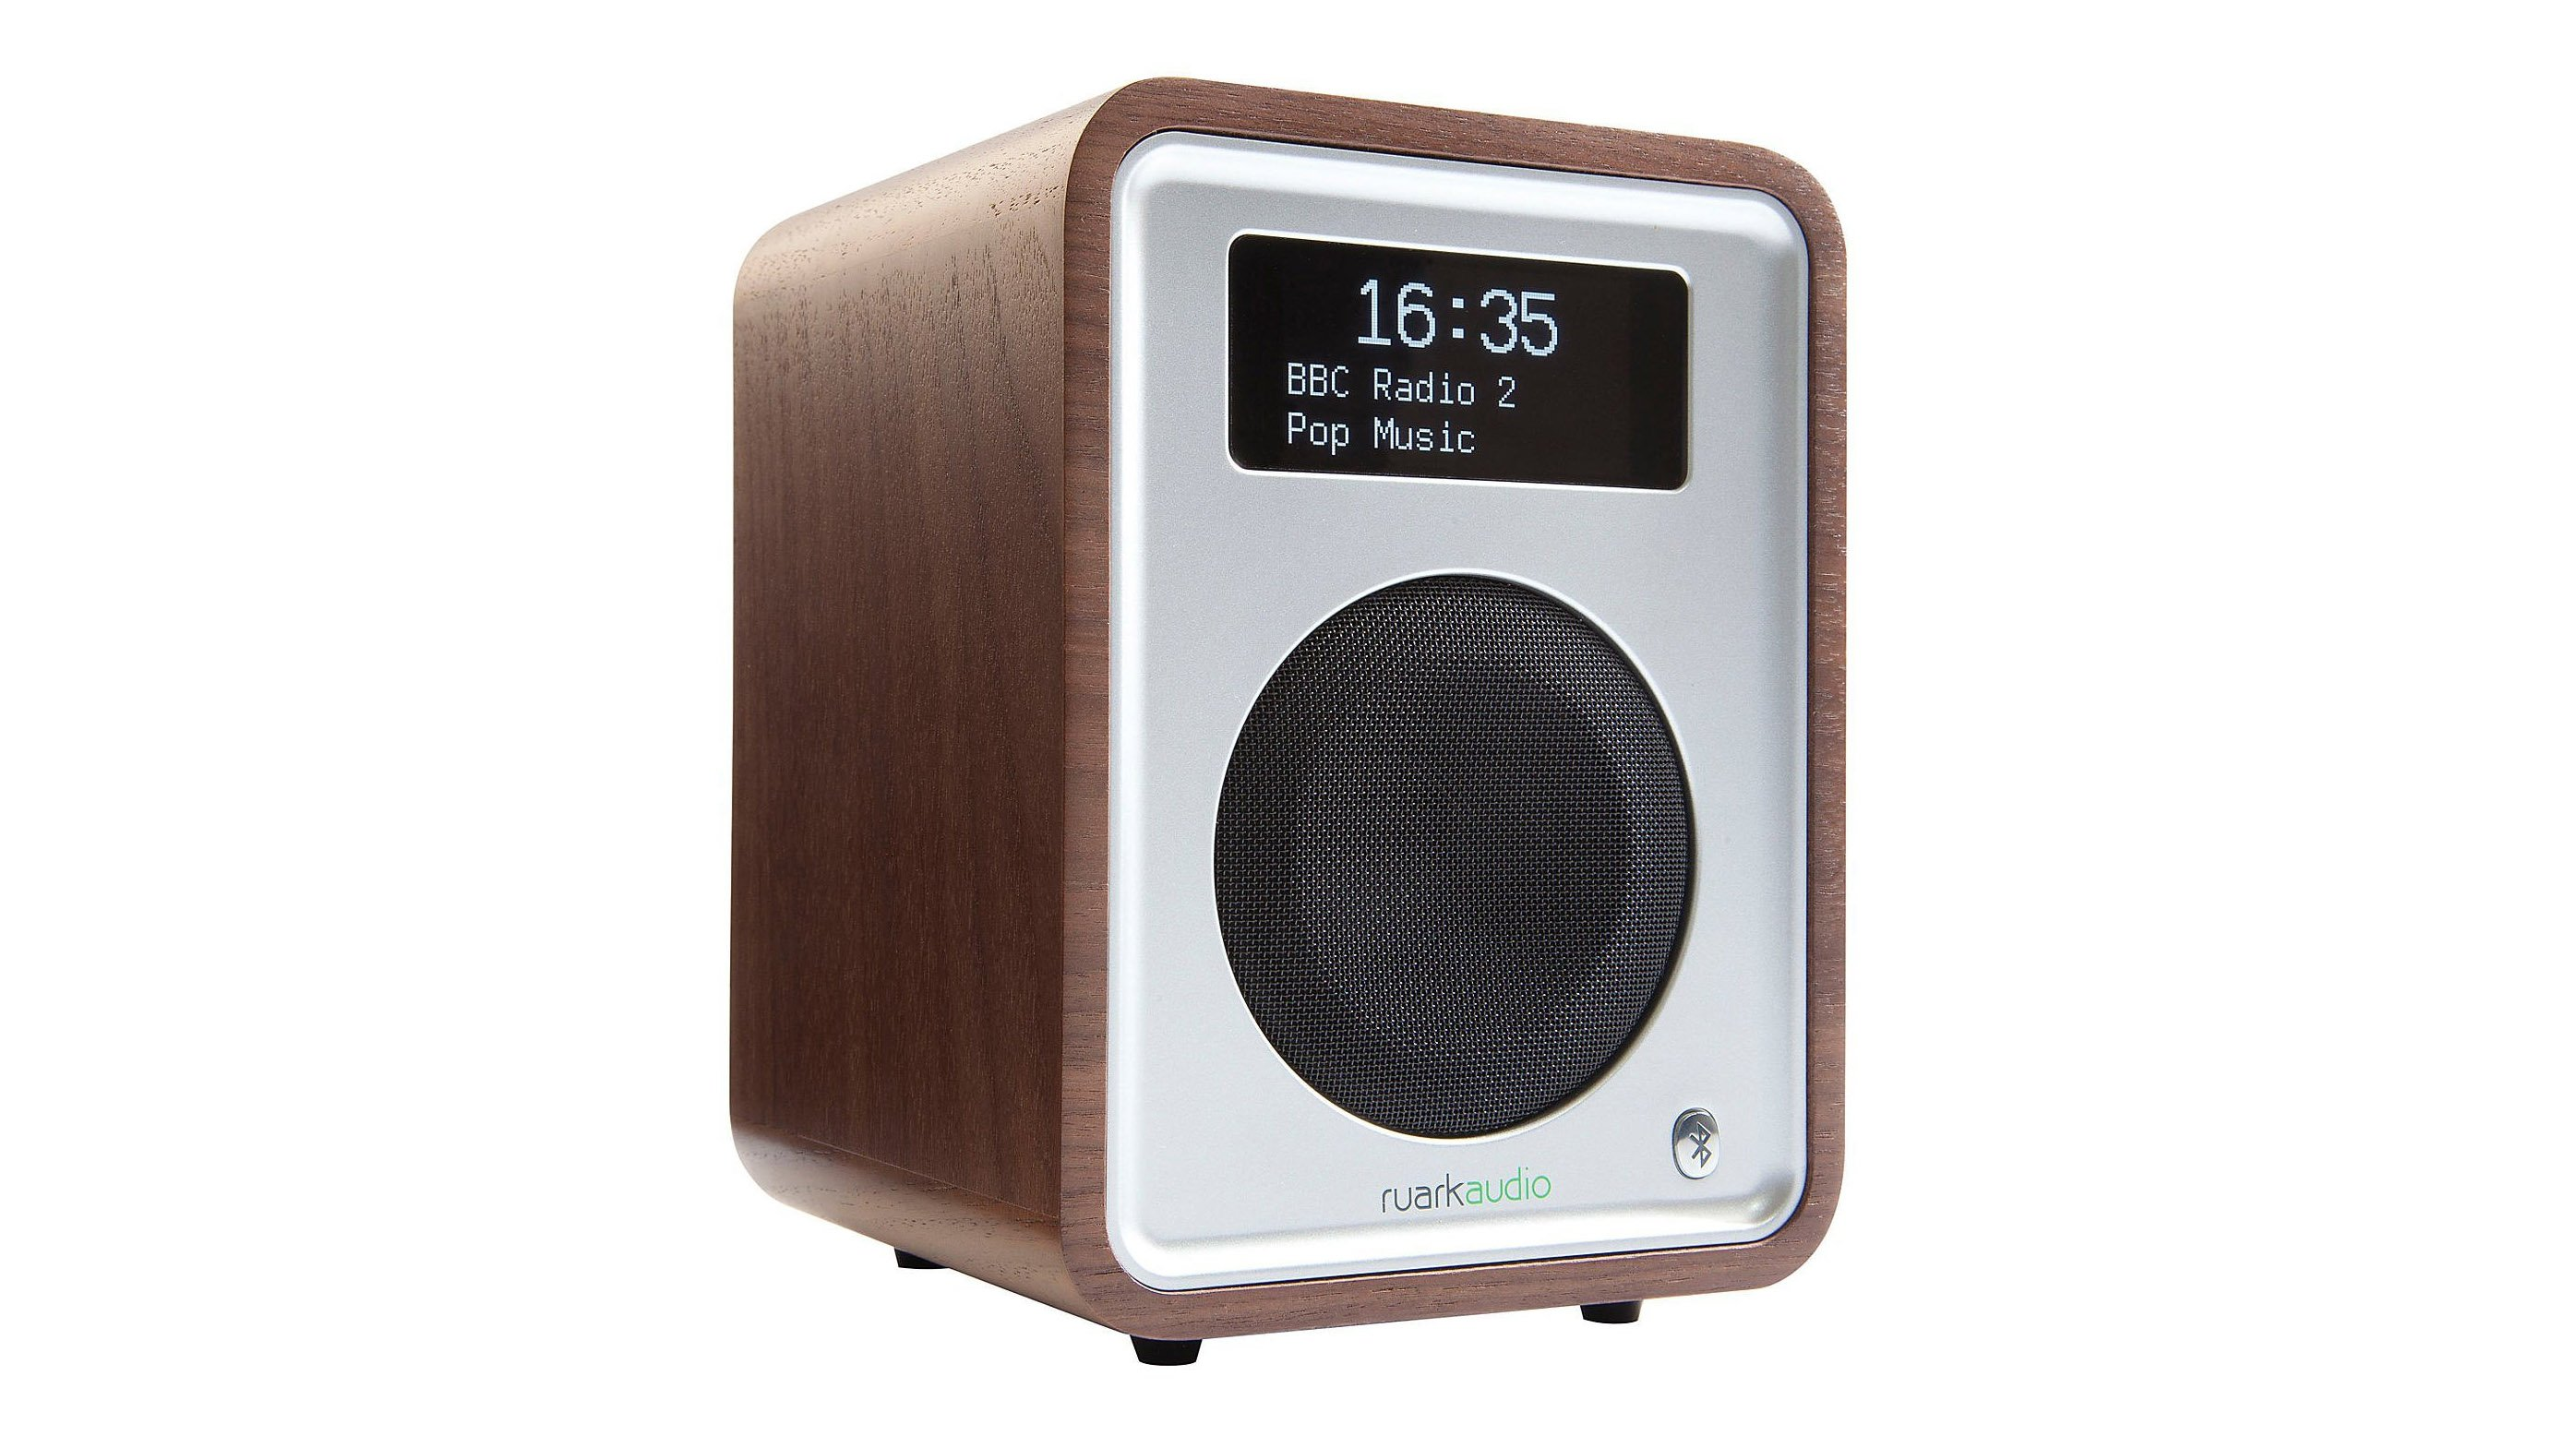 Best Dab Radio 2018 The Digital Radios You Can Buy From 29 Uk Bt Phone Socket Wiring Ruark Audios Have Earned A Reputation For Elegant Design And Exceptional Audio R1 Mk Iii Gives Plenty Of Evidence To Back This Up